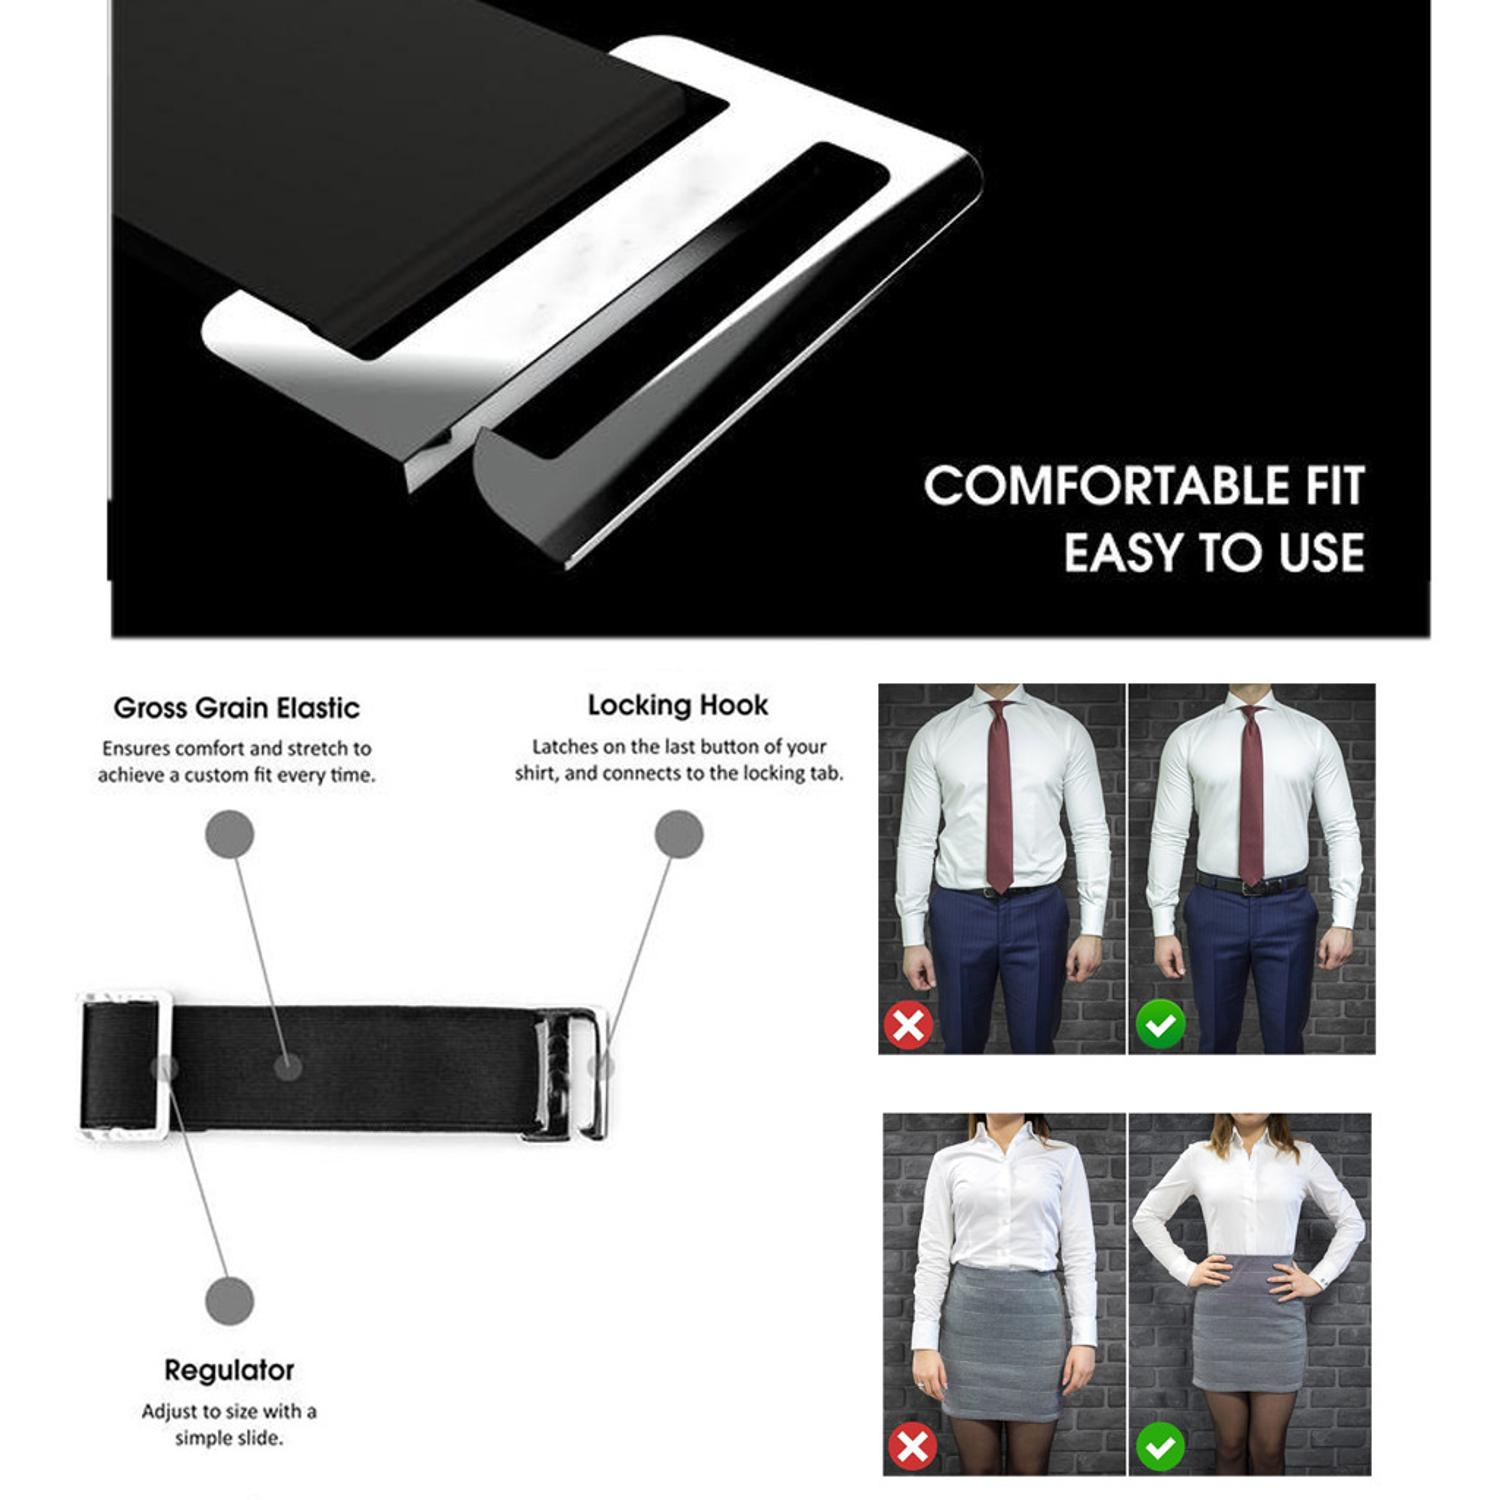 Women Men Near Shirt-Stay Best Holders Shirt Suspenders Adjustable Stays Tuck  Belt Shirt Tucked Shirt Holder Men Stay Belt